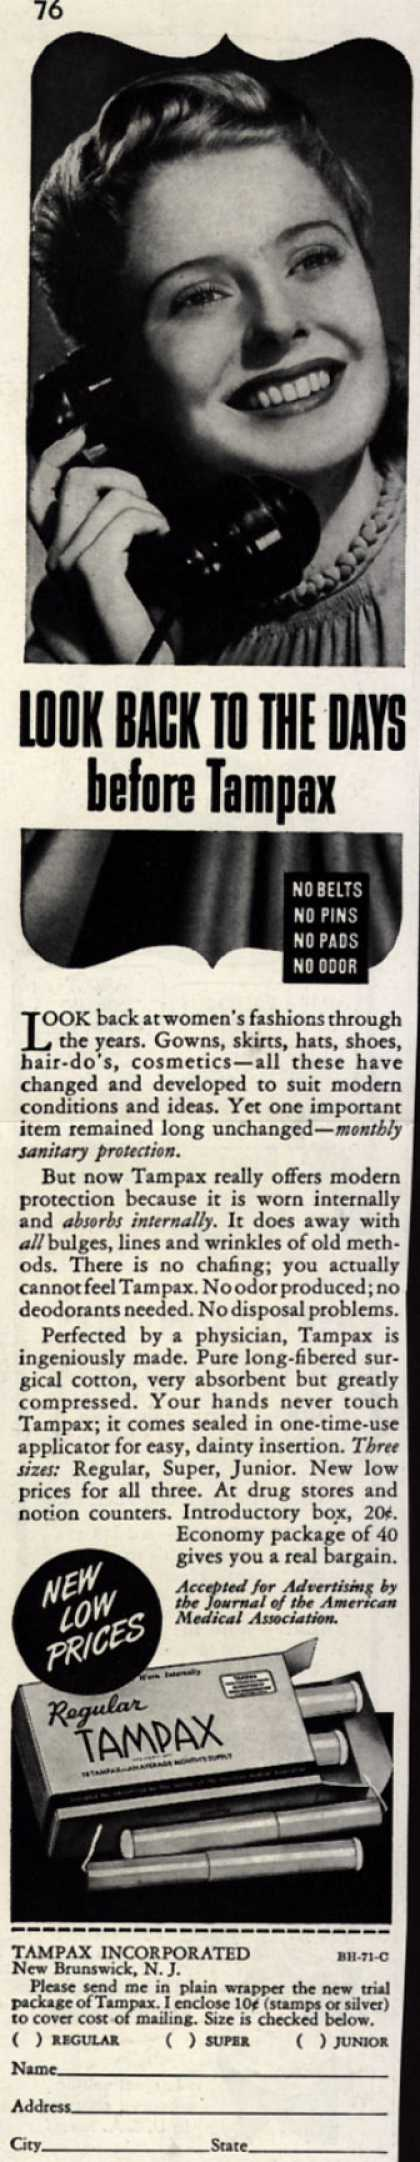 Tampax's Tampons – Look Back To The Days before Tampax (1941)